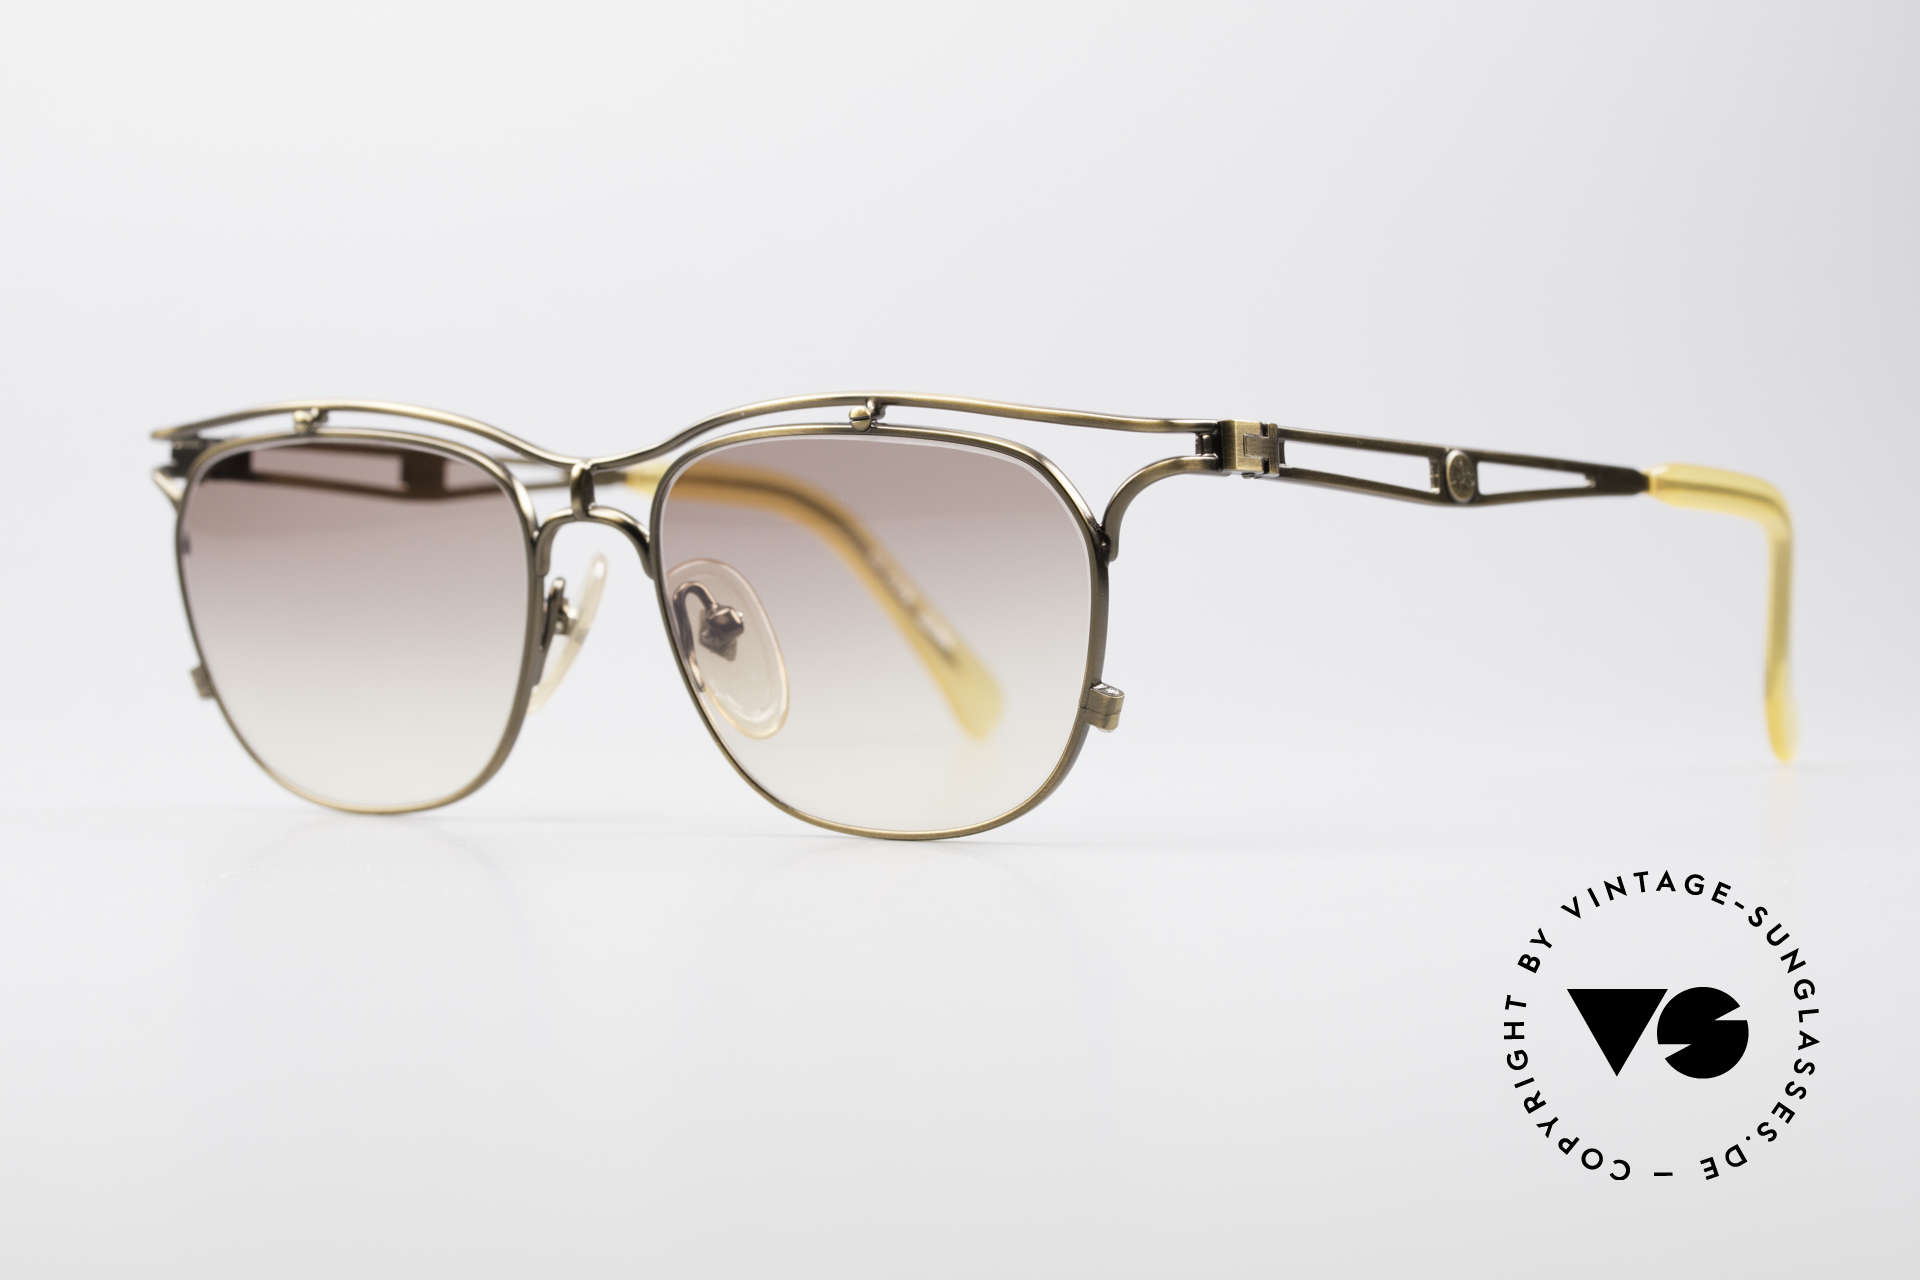 "Jean Paul Gaultier 55-2178 90's Vintage JPG Sunglasses, JPG color: smoke gold, burnt gold or ""antique gold"", Made for Men and Women"